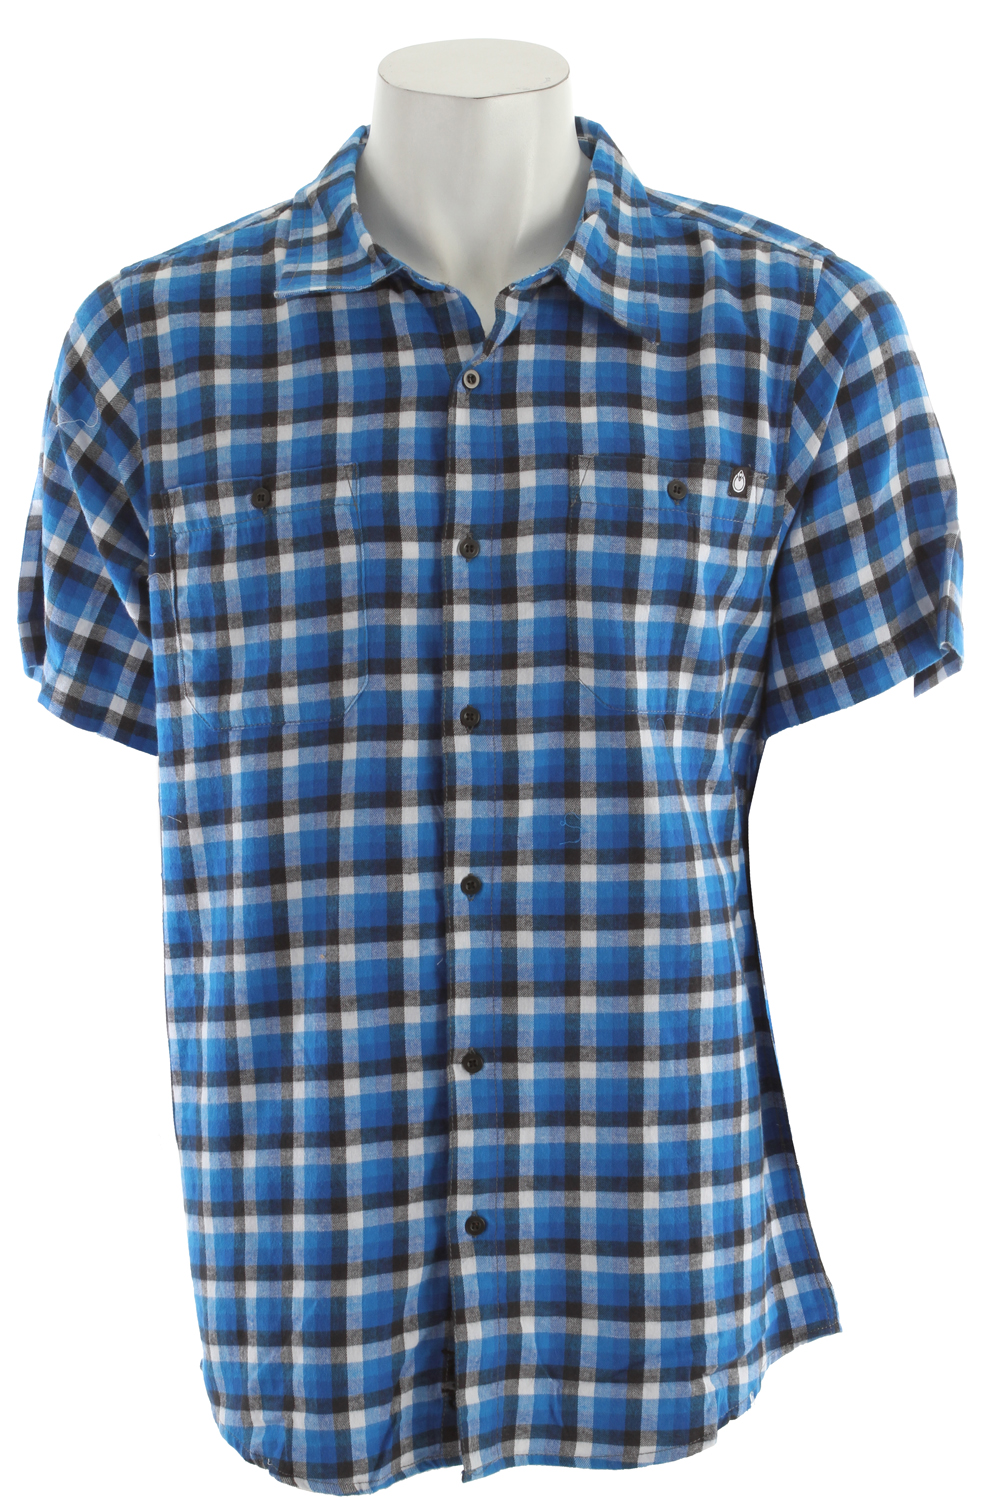 Nomis Fade Plaid Shirt New Blue Fade Plaid - $24.95